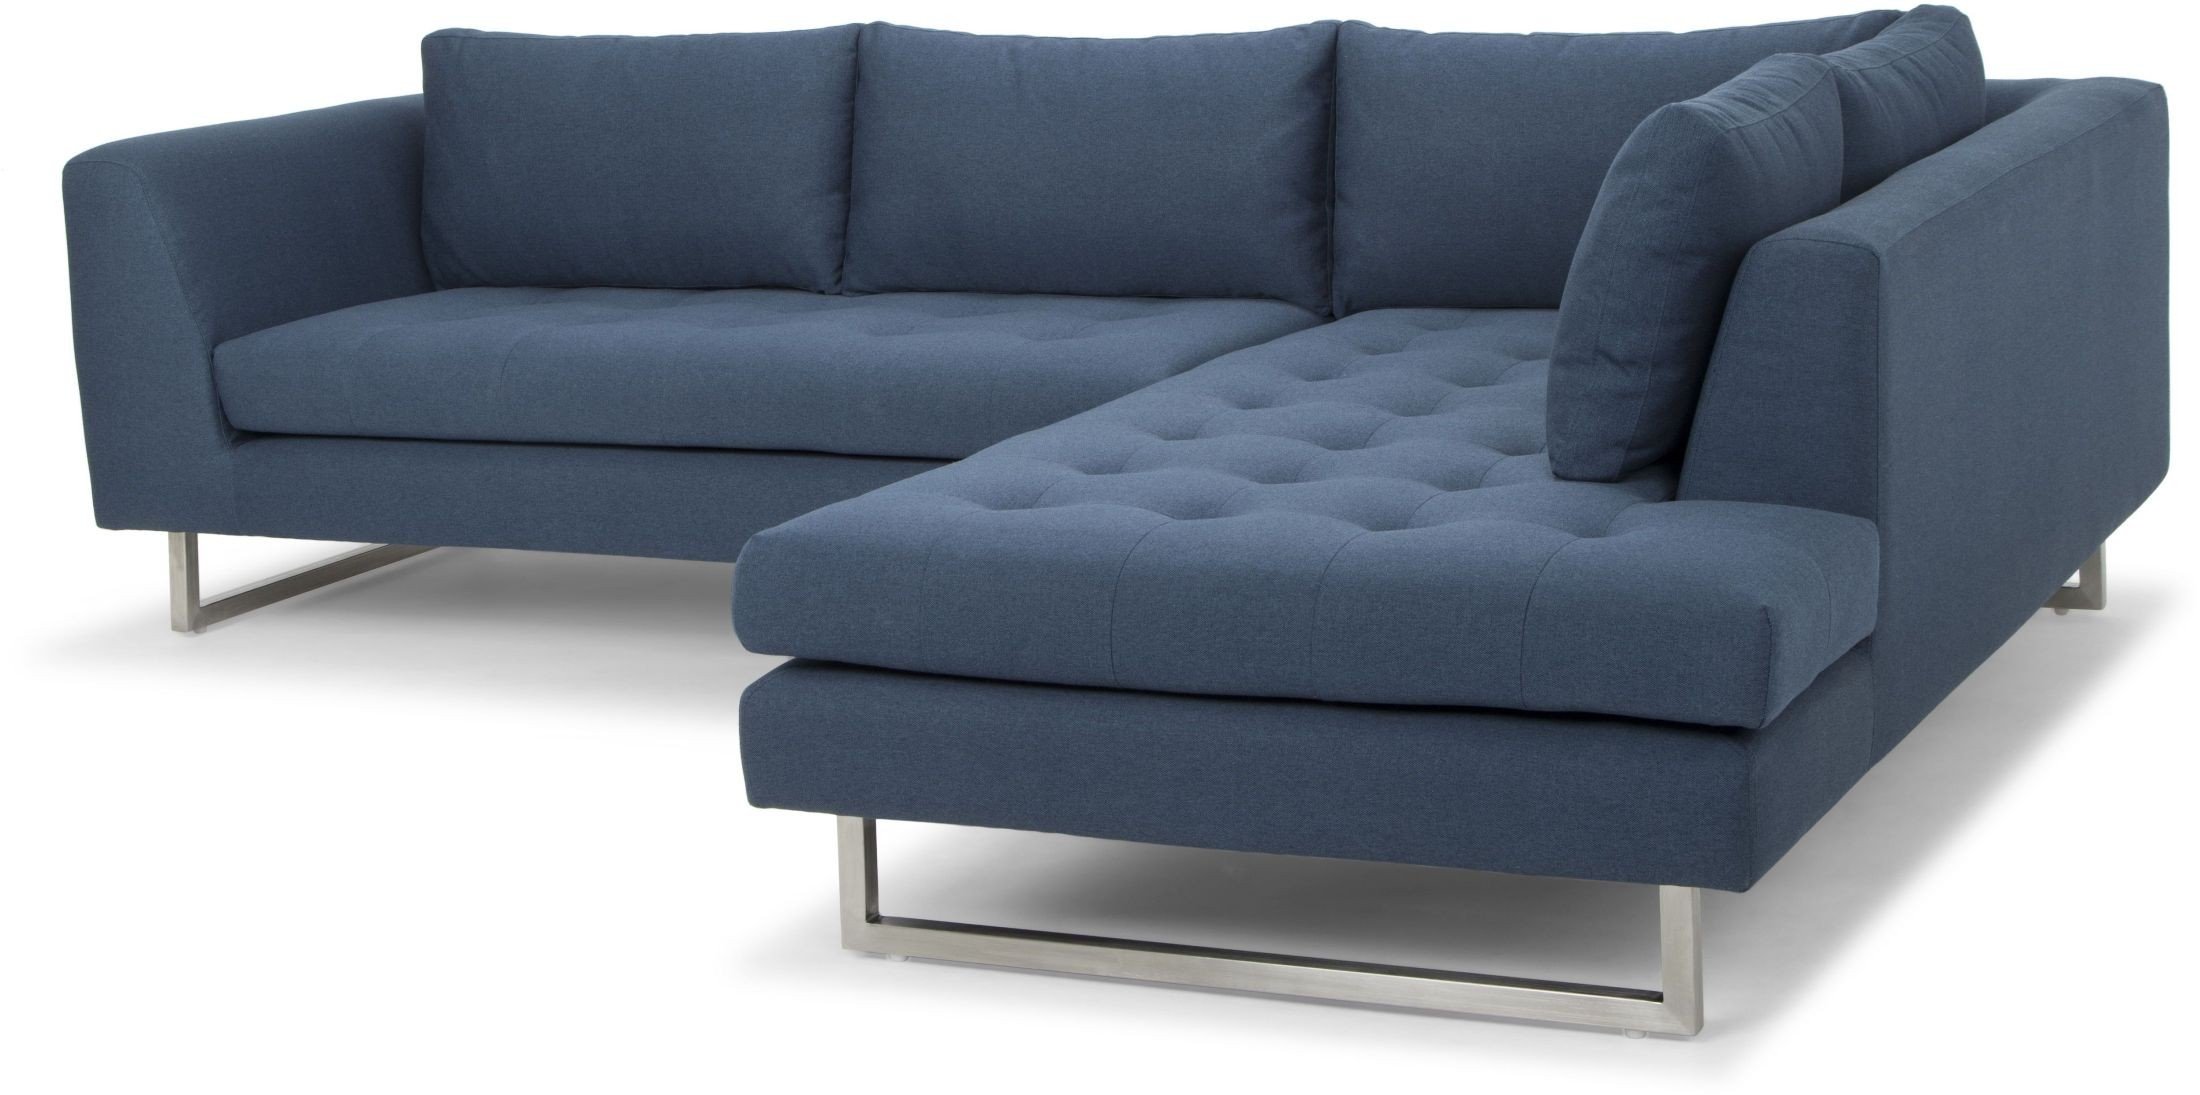 Janis Blue Fabric Raf Sectional Sofa From Nuevo Coleman